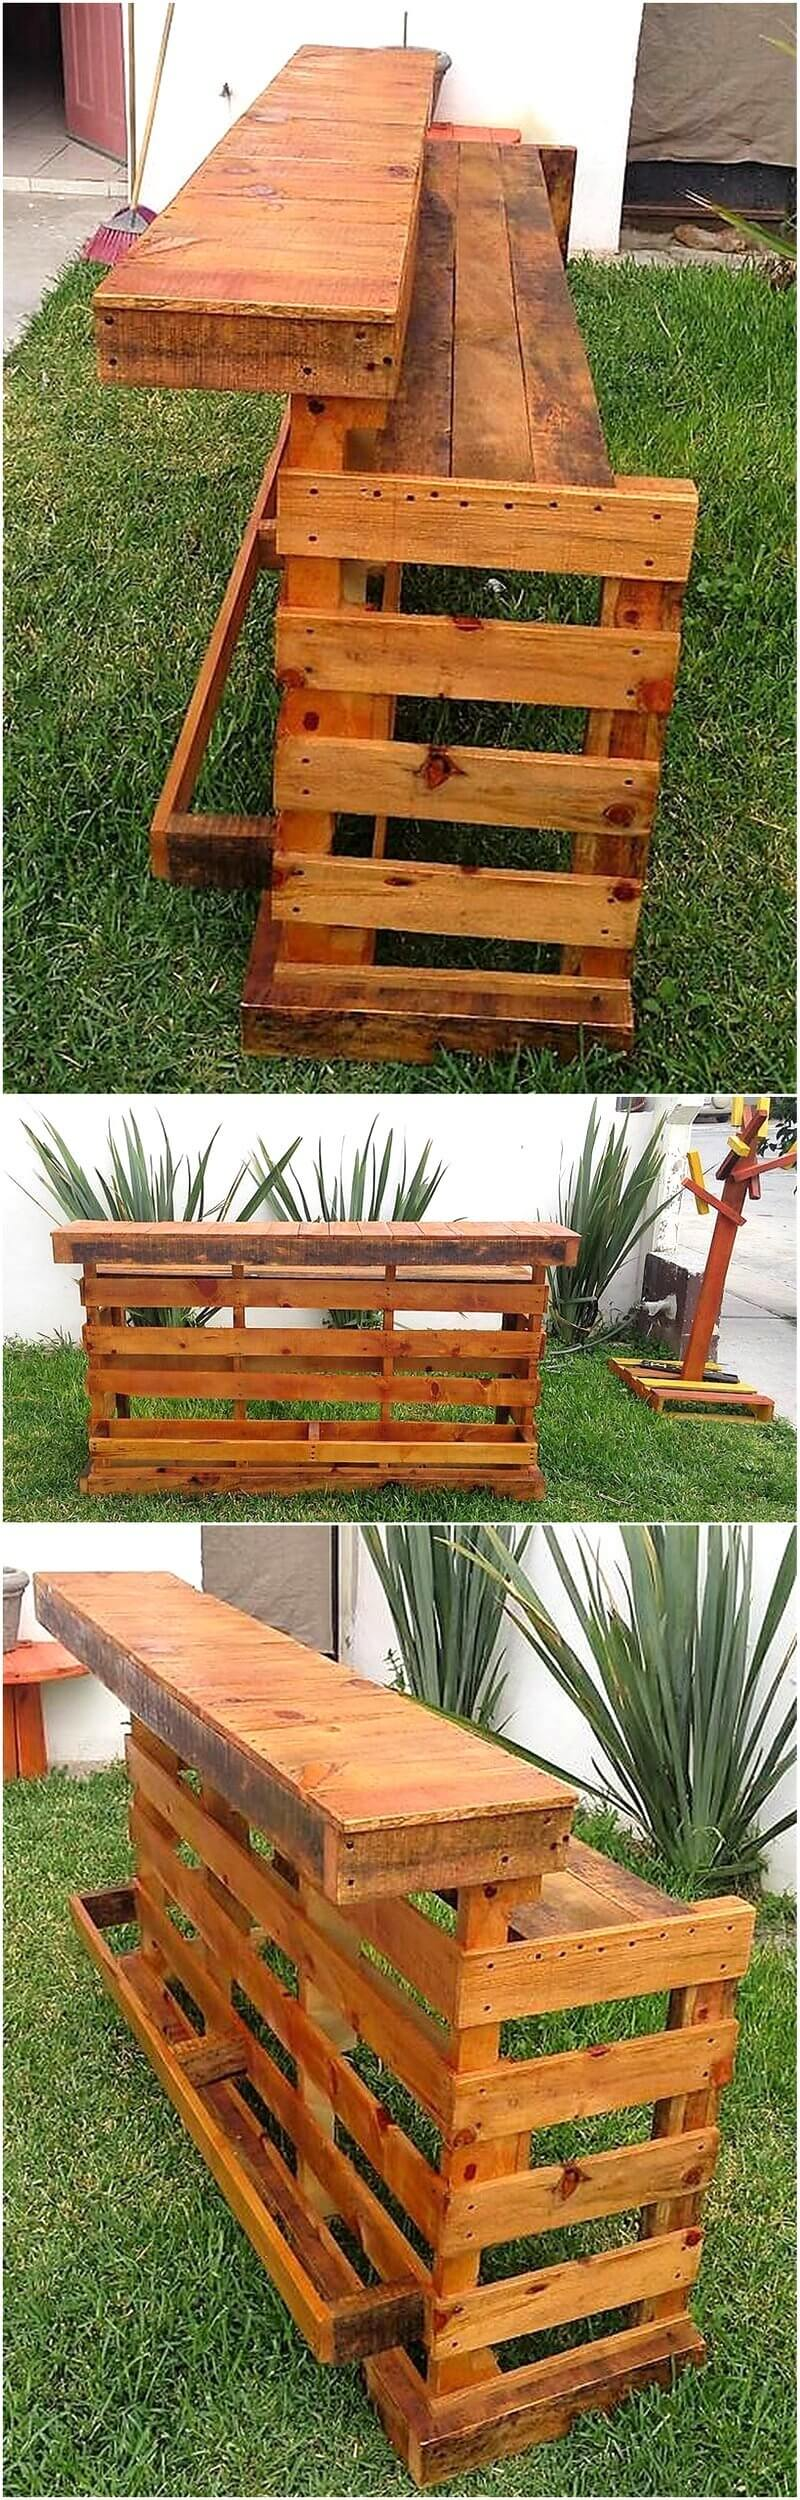 Cheap Creations in Style with Recycled Wood Pallets | Page ...